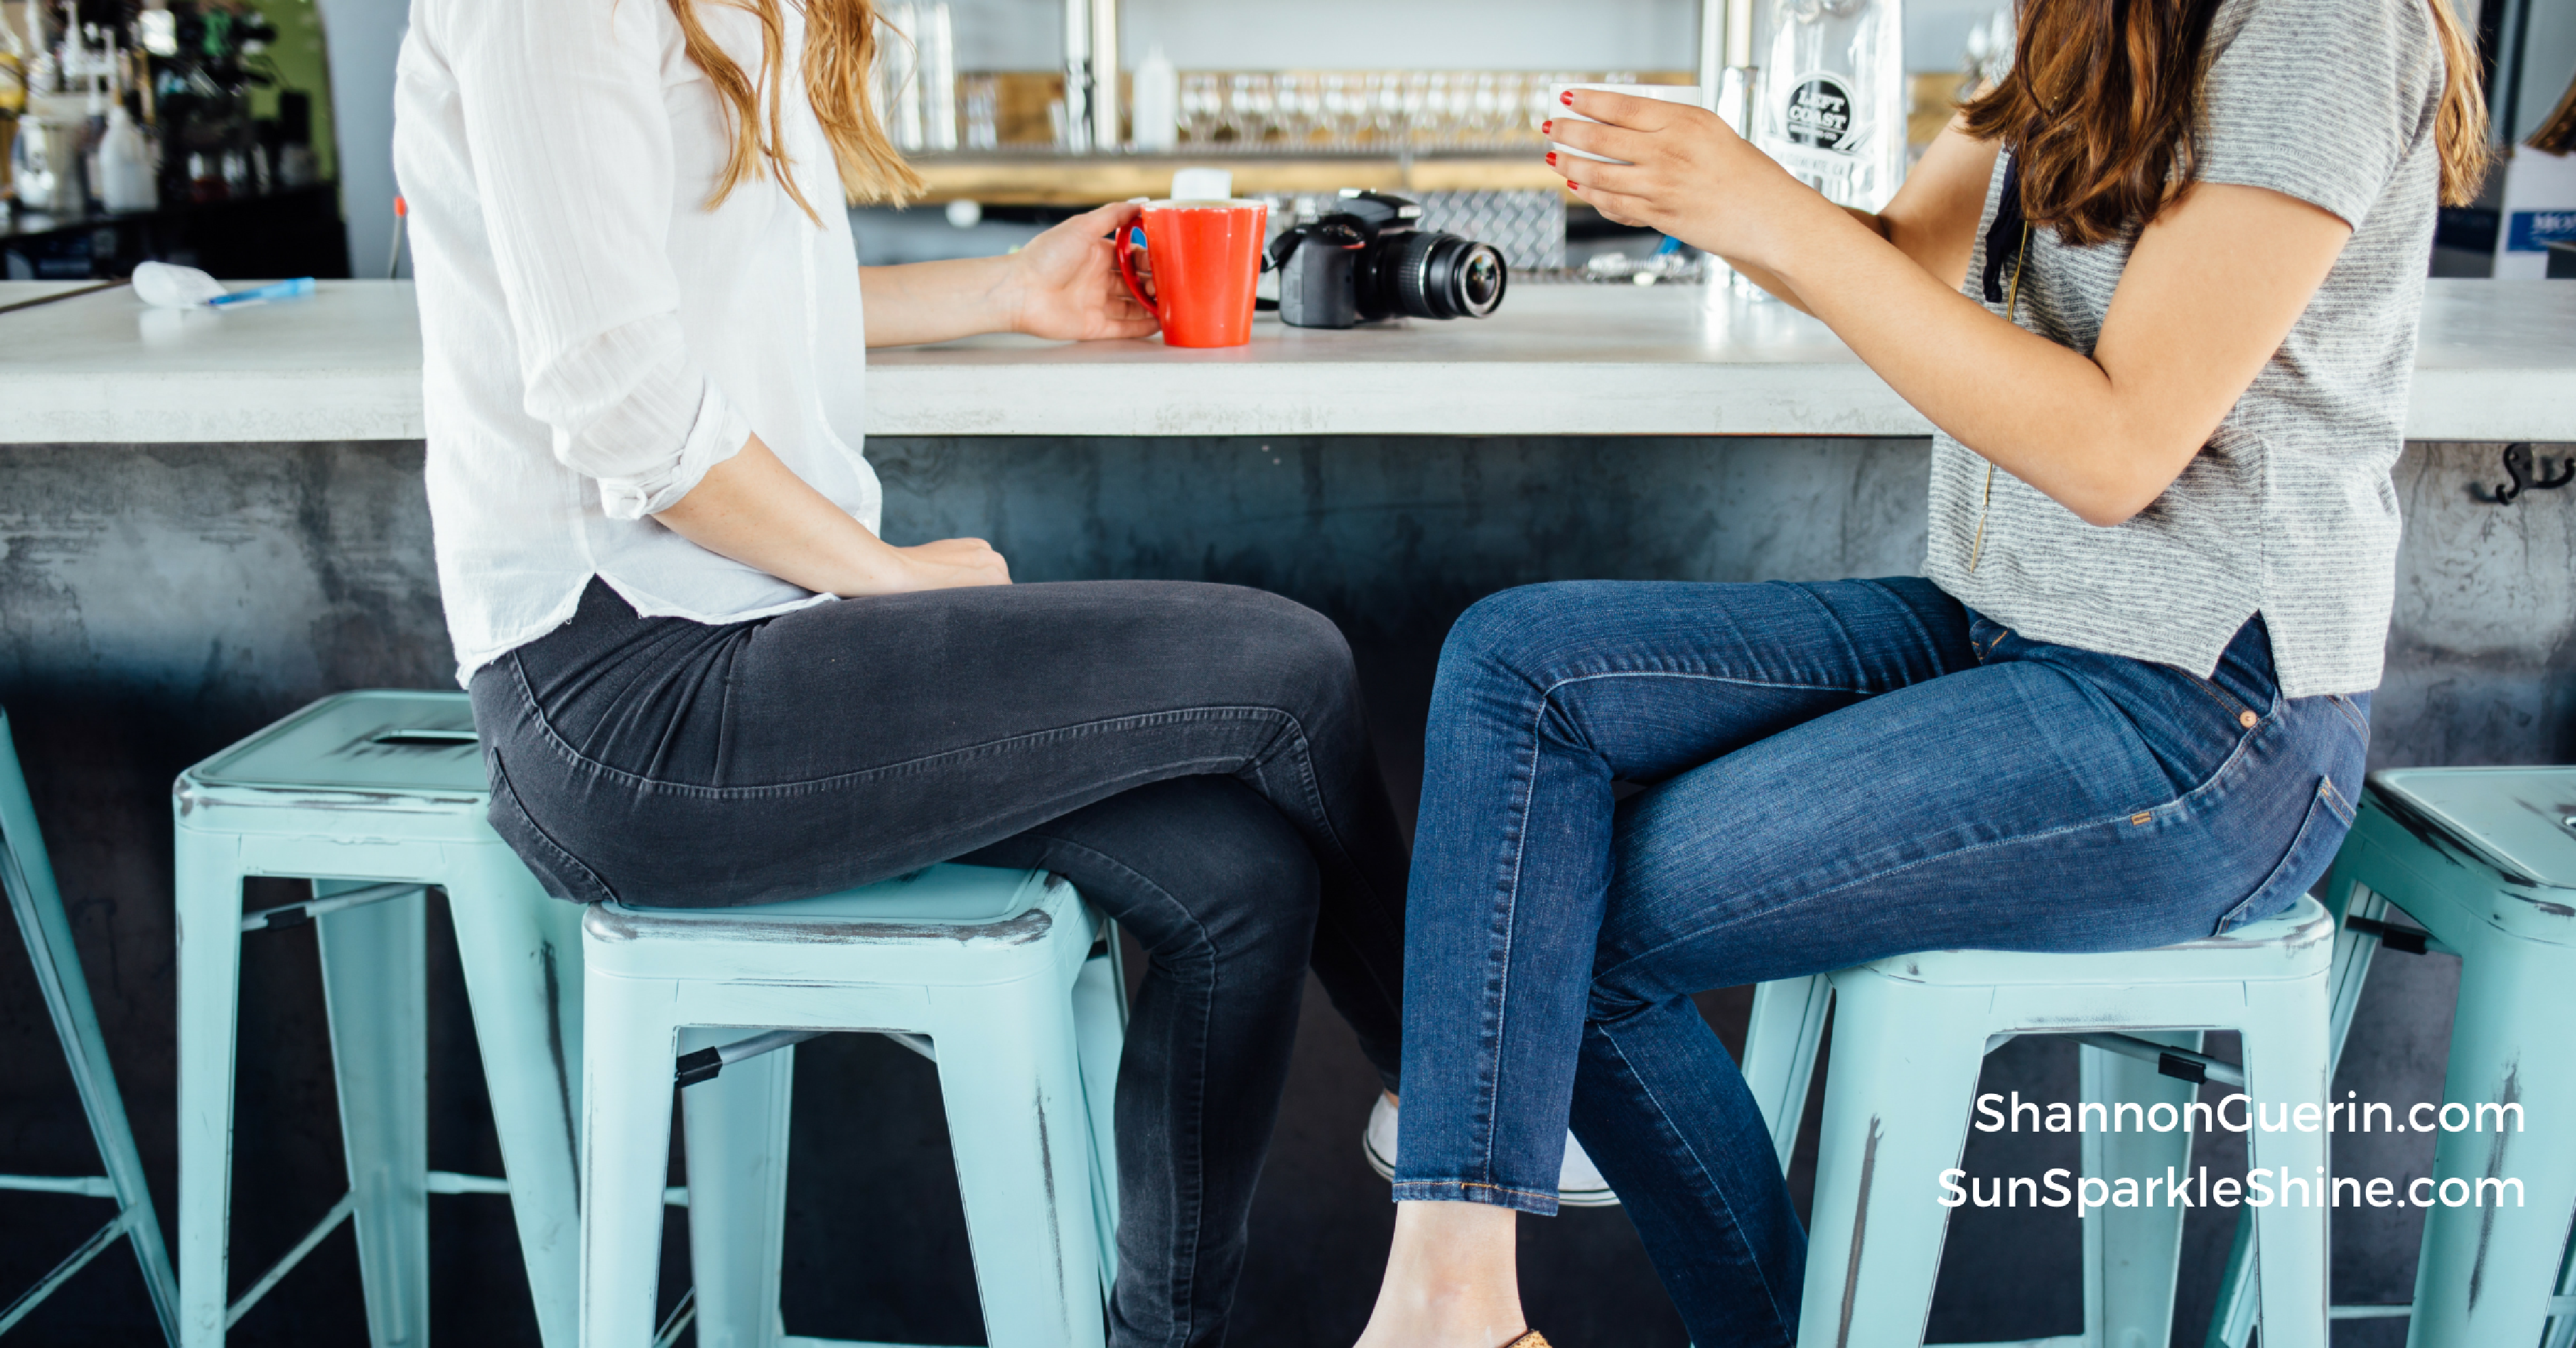 Are you seeking lasting friendships? We all have friendship goals. Here's the number one way to achieve them and the one thing that's been holding you back.